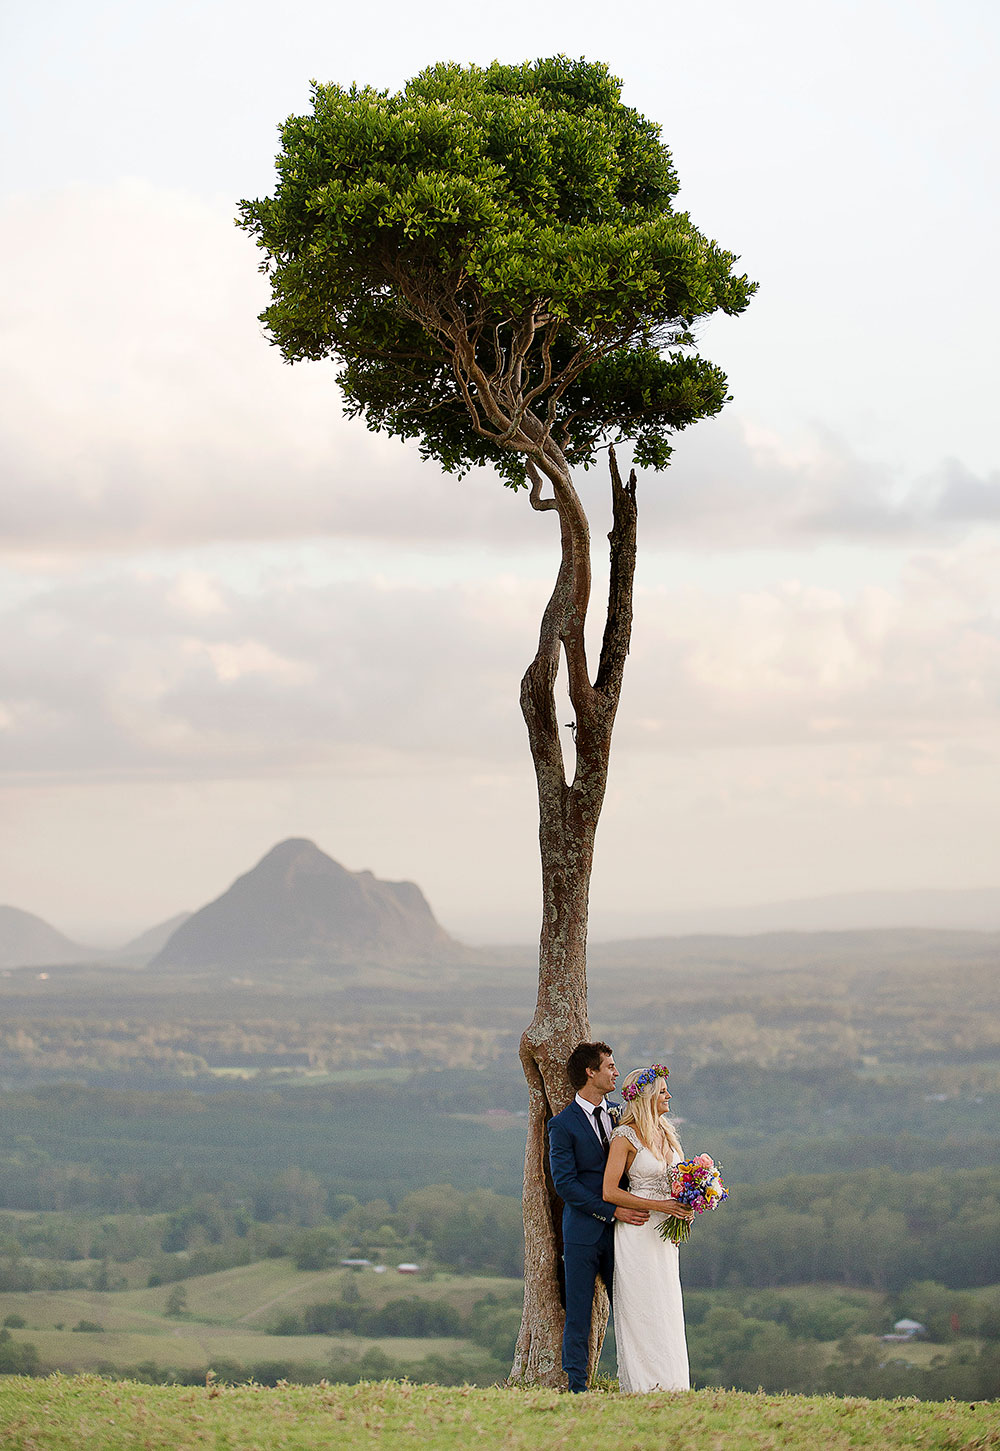 Christopher Thomas Maleny weddings